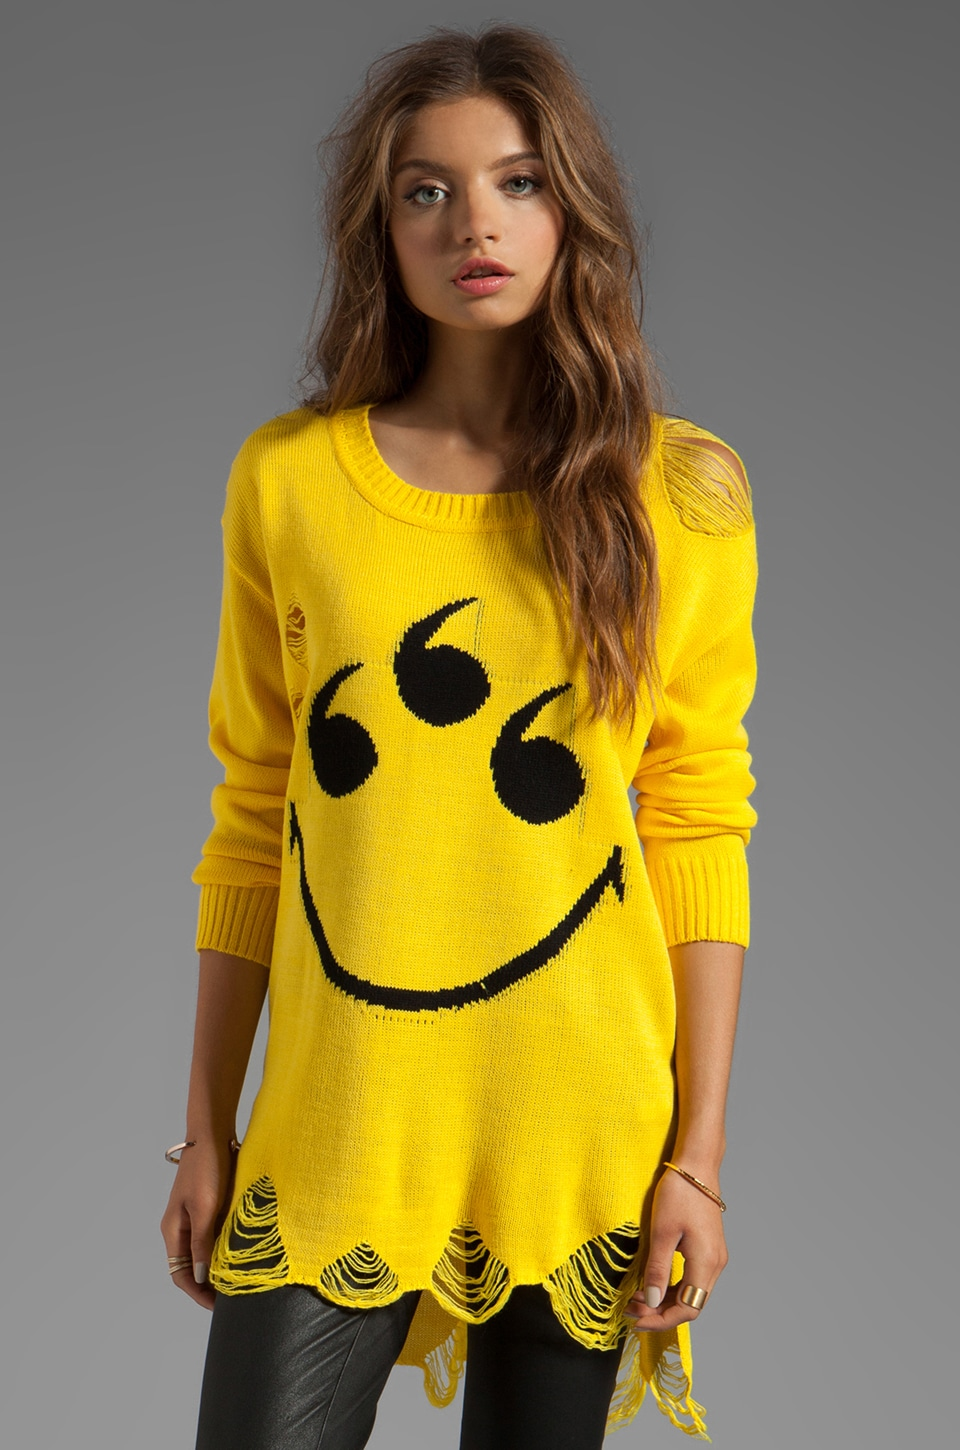 UNIF 6 Eyes Sweater in Yellow